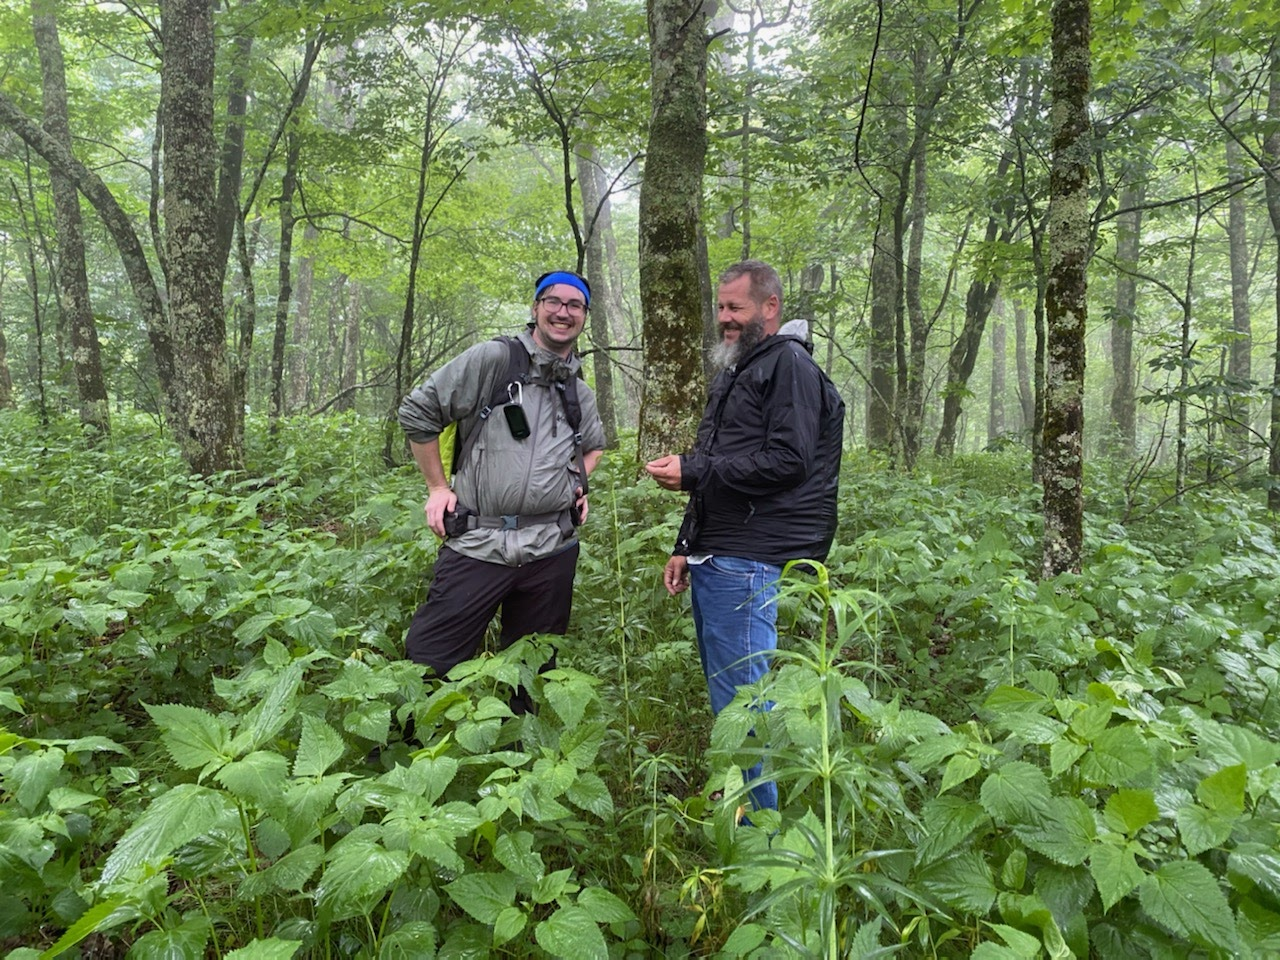 Two smiling men surrounded by green plants